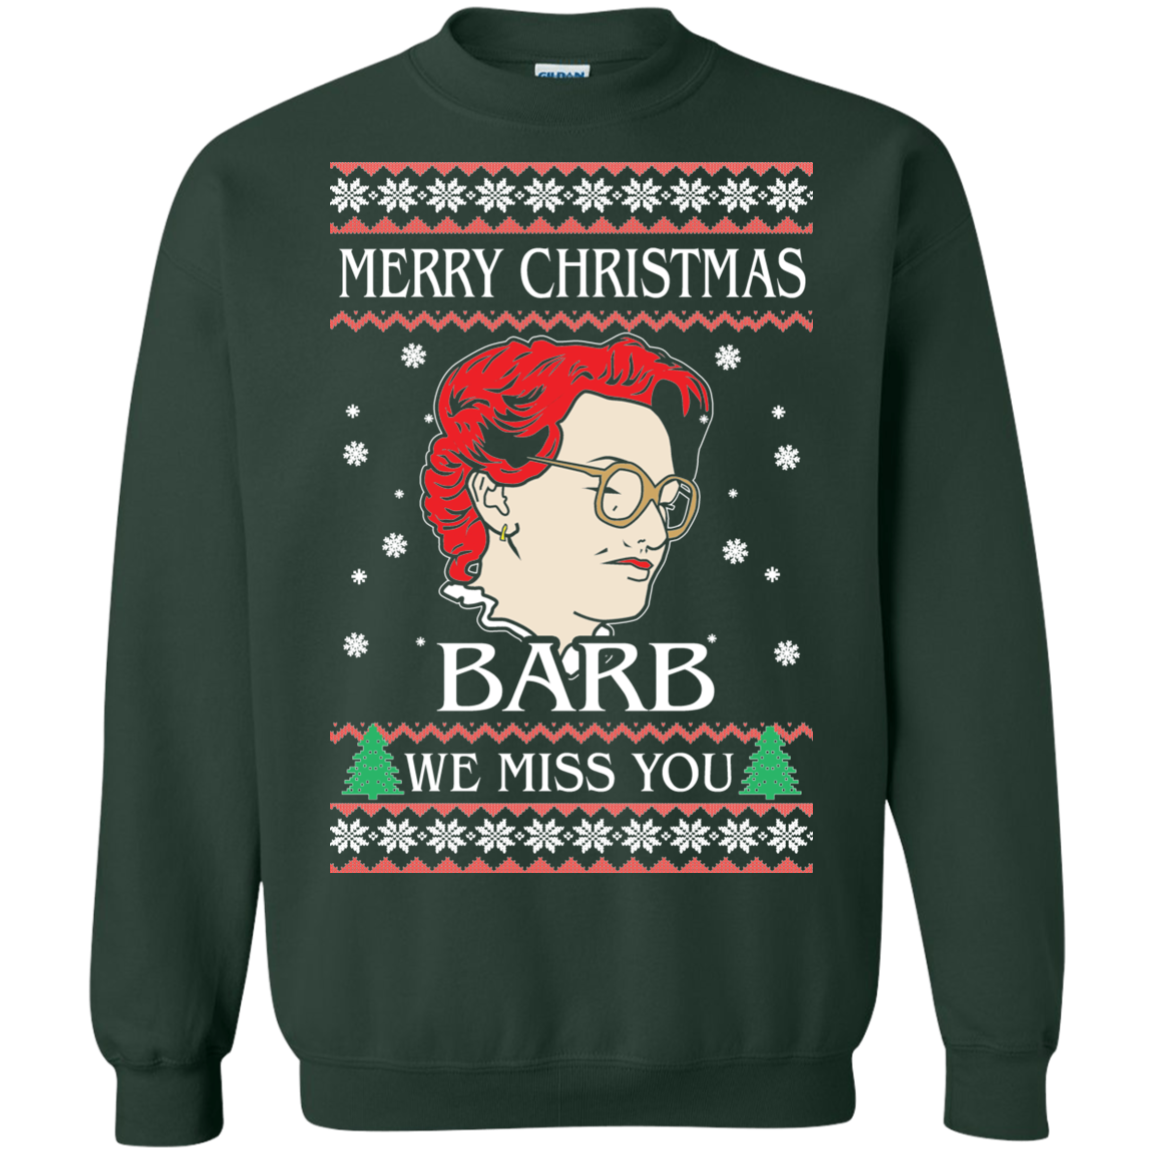 Merry Christmas Barb We Miss You - Christmas Sweater - RobinPlaceFabrics